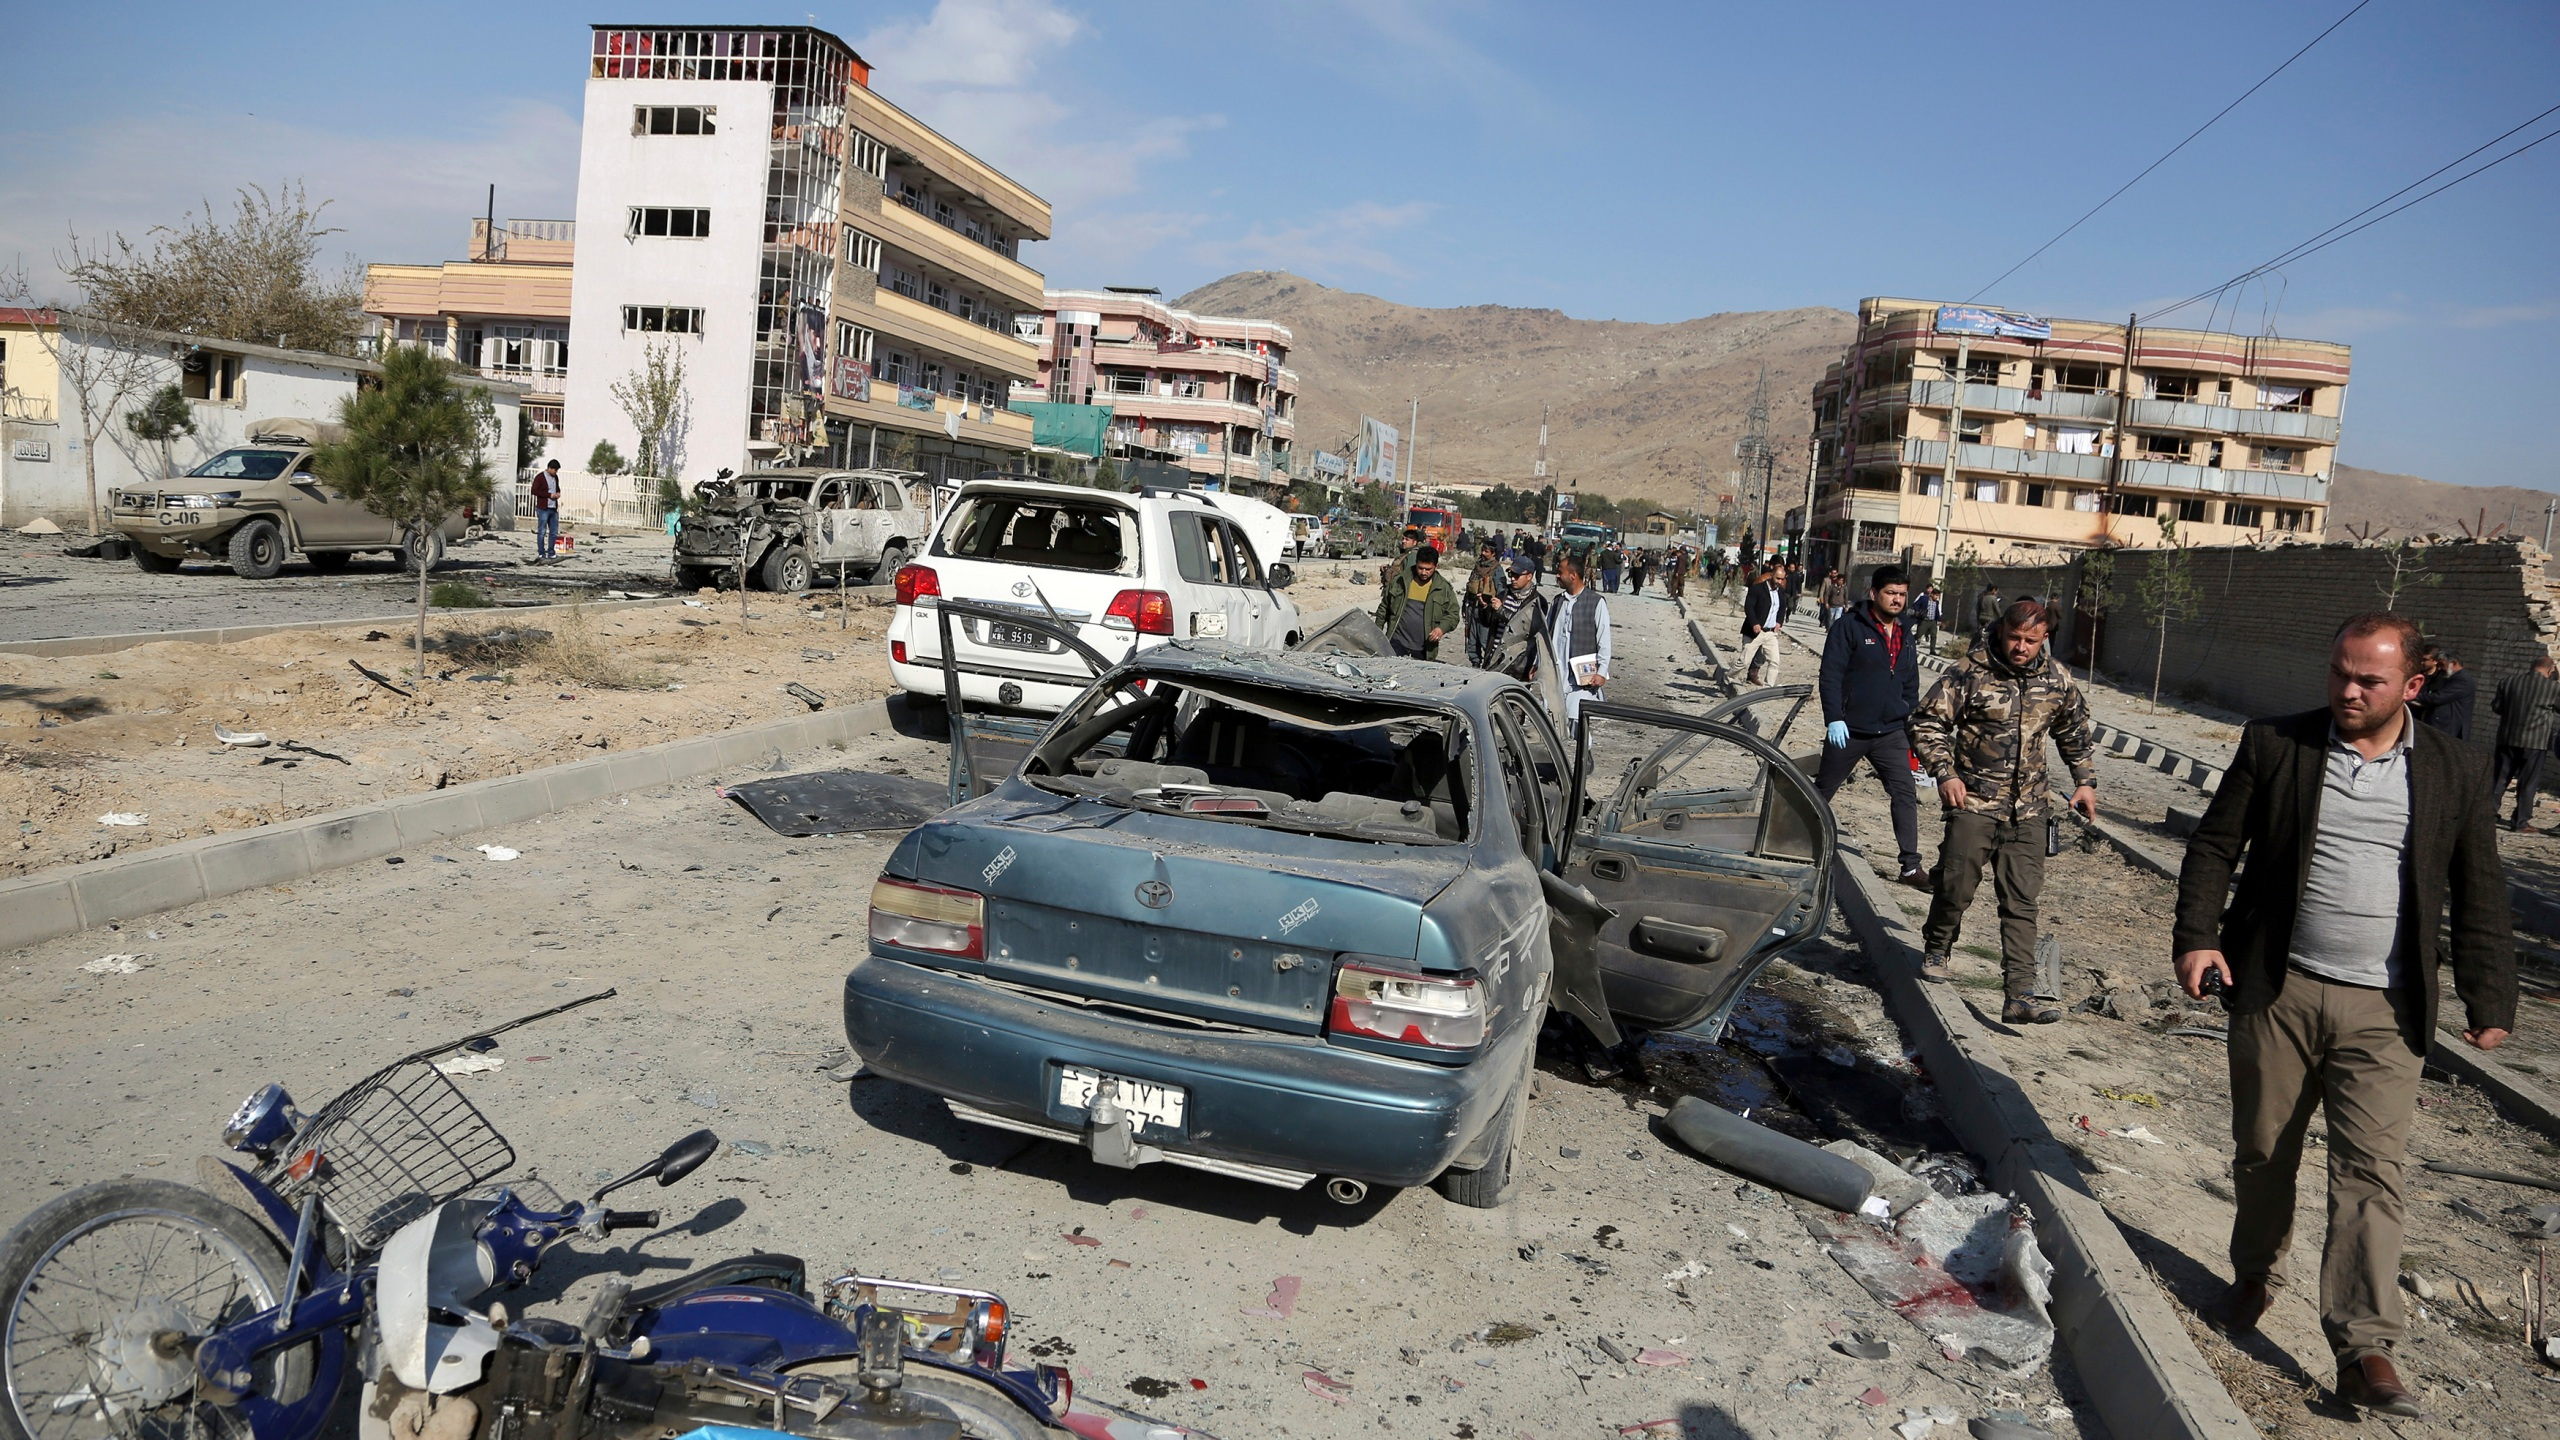 In this Wednesday, Nov. 13, 2019, file photo, Afghan security personnel gather at the site of a car bomb attack in Kabul, Afghanistan. Afghanistan will need vast amounts of foreign funding to keep its government afloat through 2024, a U.S. agency said Thursday, even as foreign donors are increasingly angry over the cost of debilitating corruption and the U.S. seeks a peace deal with Taliban to withdraw its troops. (AP Photo/Rahmat Gul, File)